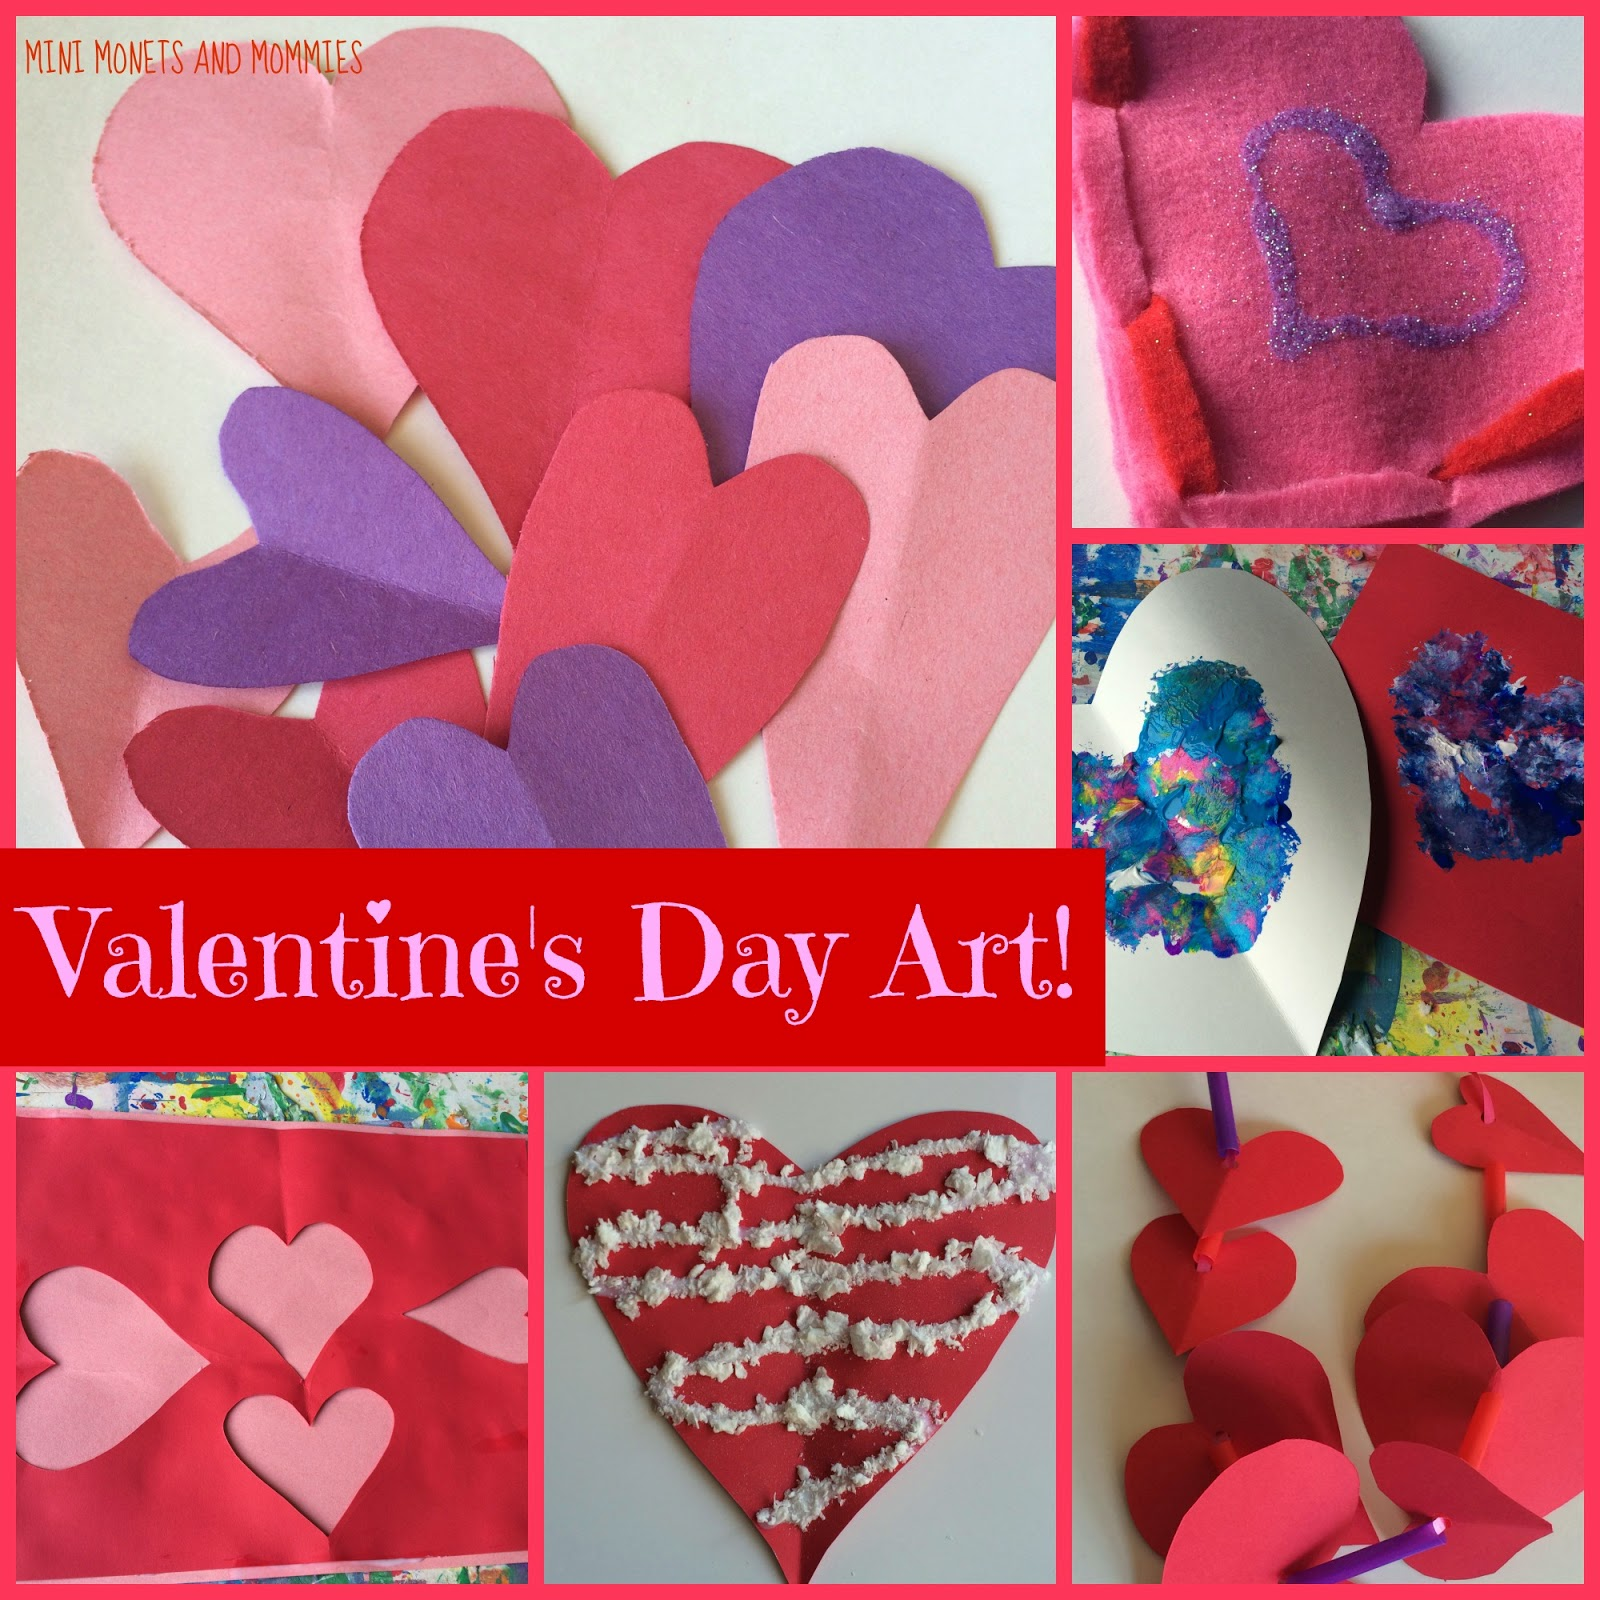 mini monets and mommies 9 creative valentine 39 s day crafts for kids. Black Bedroom Furniture Sets. Home Design Ideas